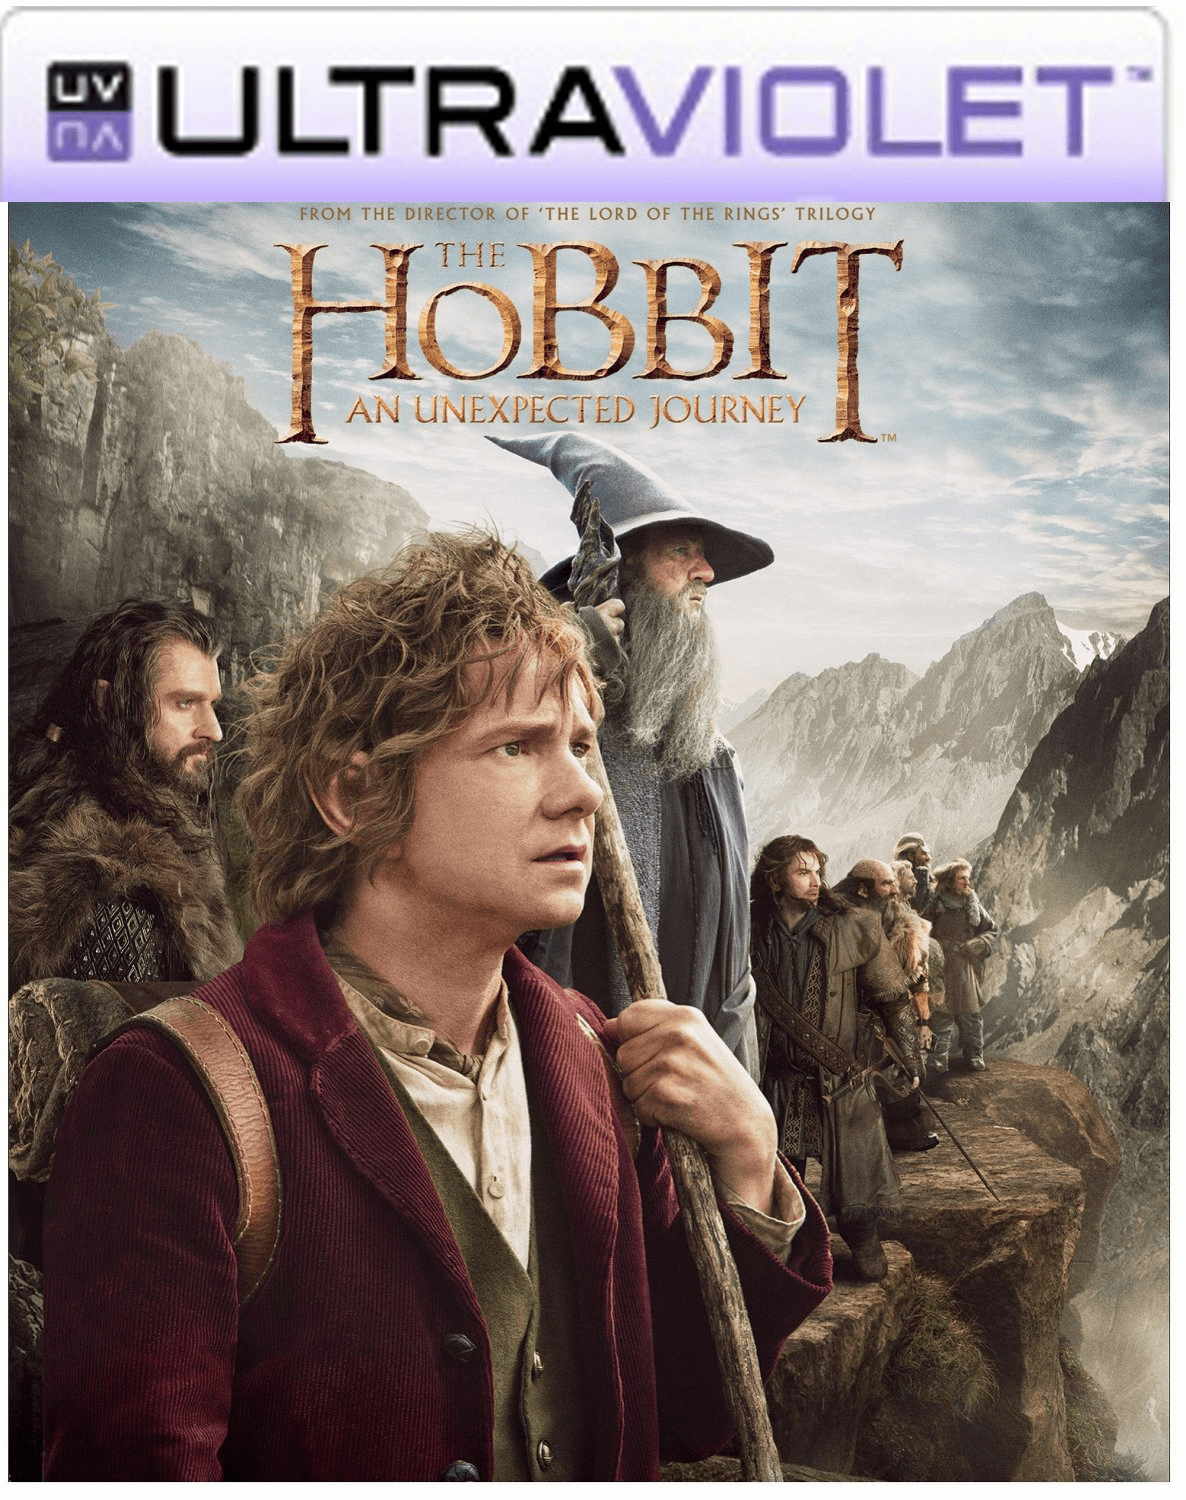 The Hobbit An Unexpected Journey SD UltraViolet UV Code